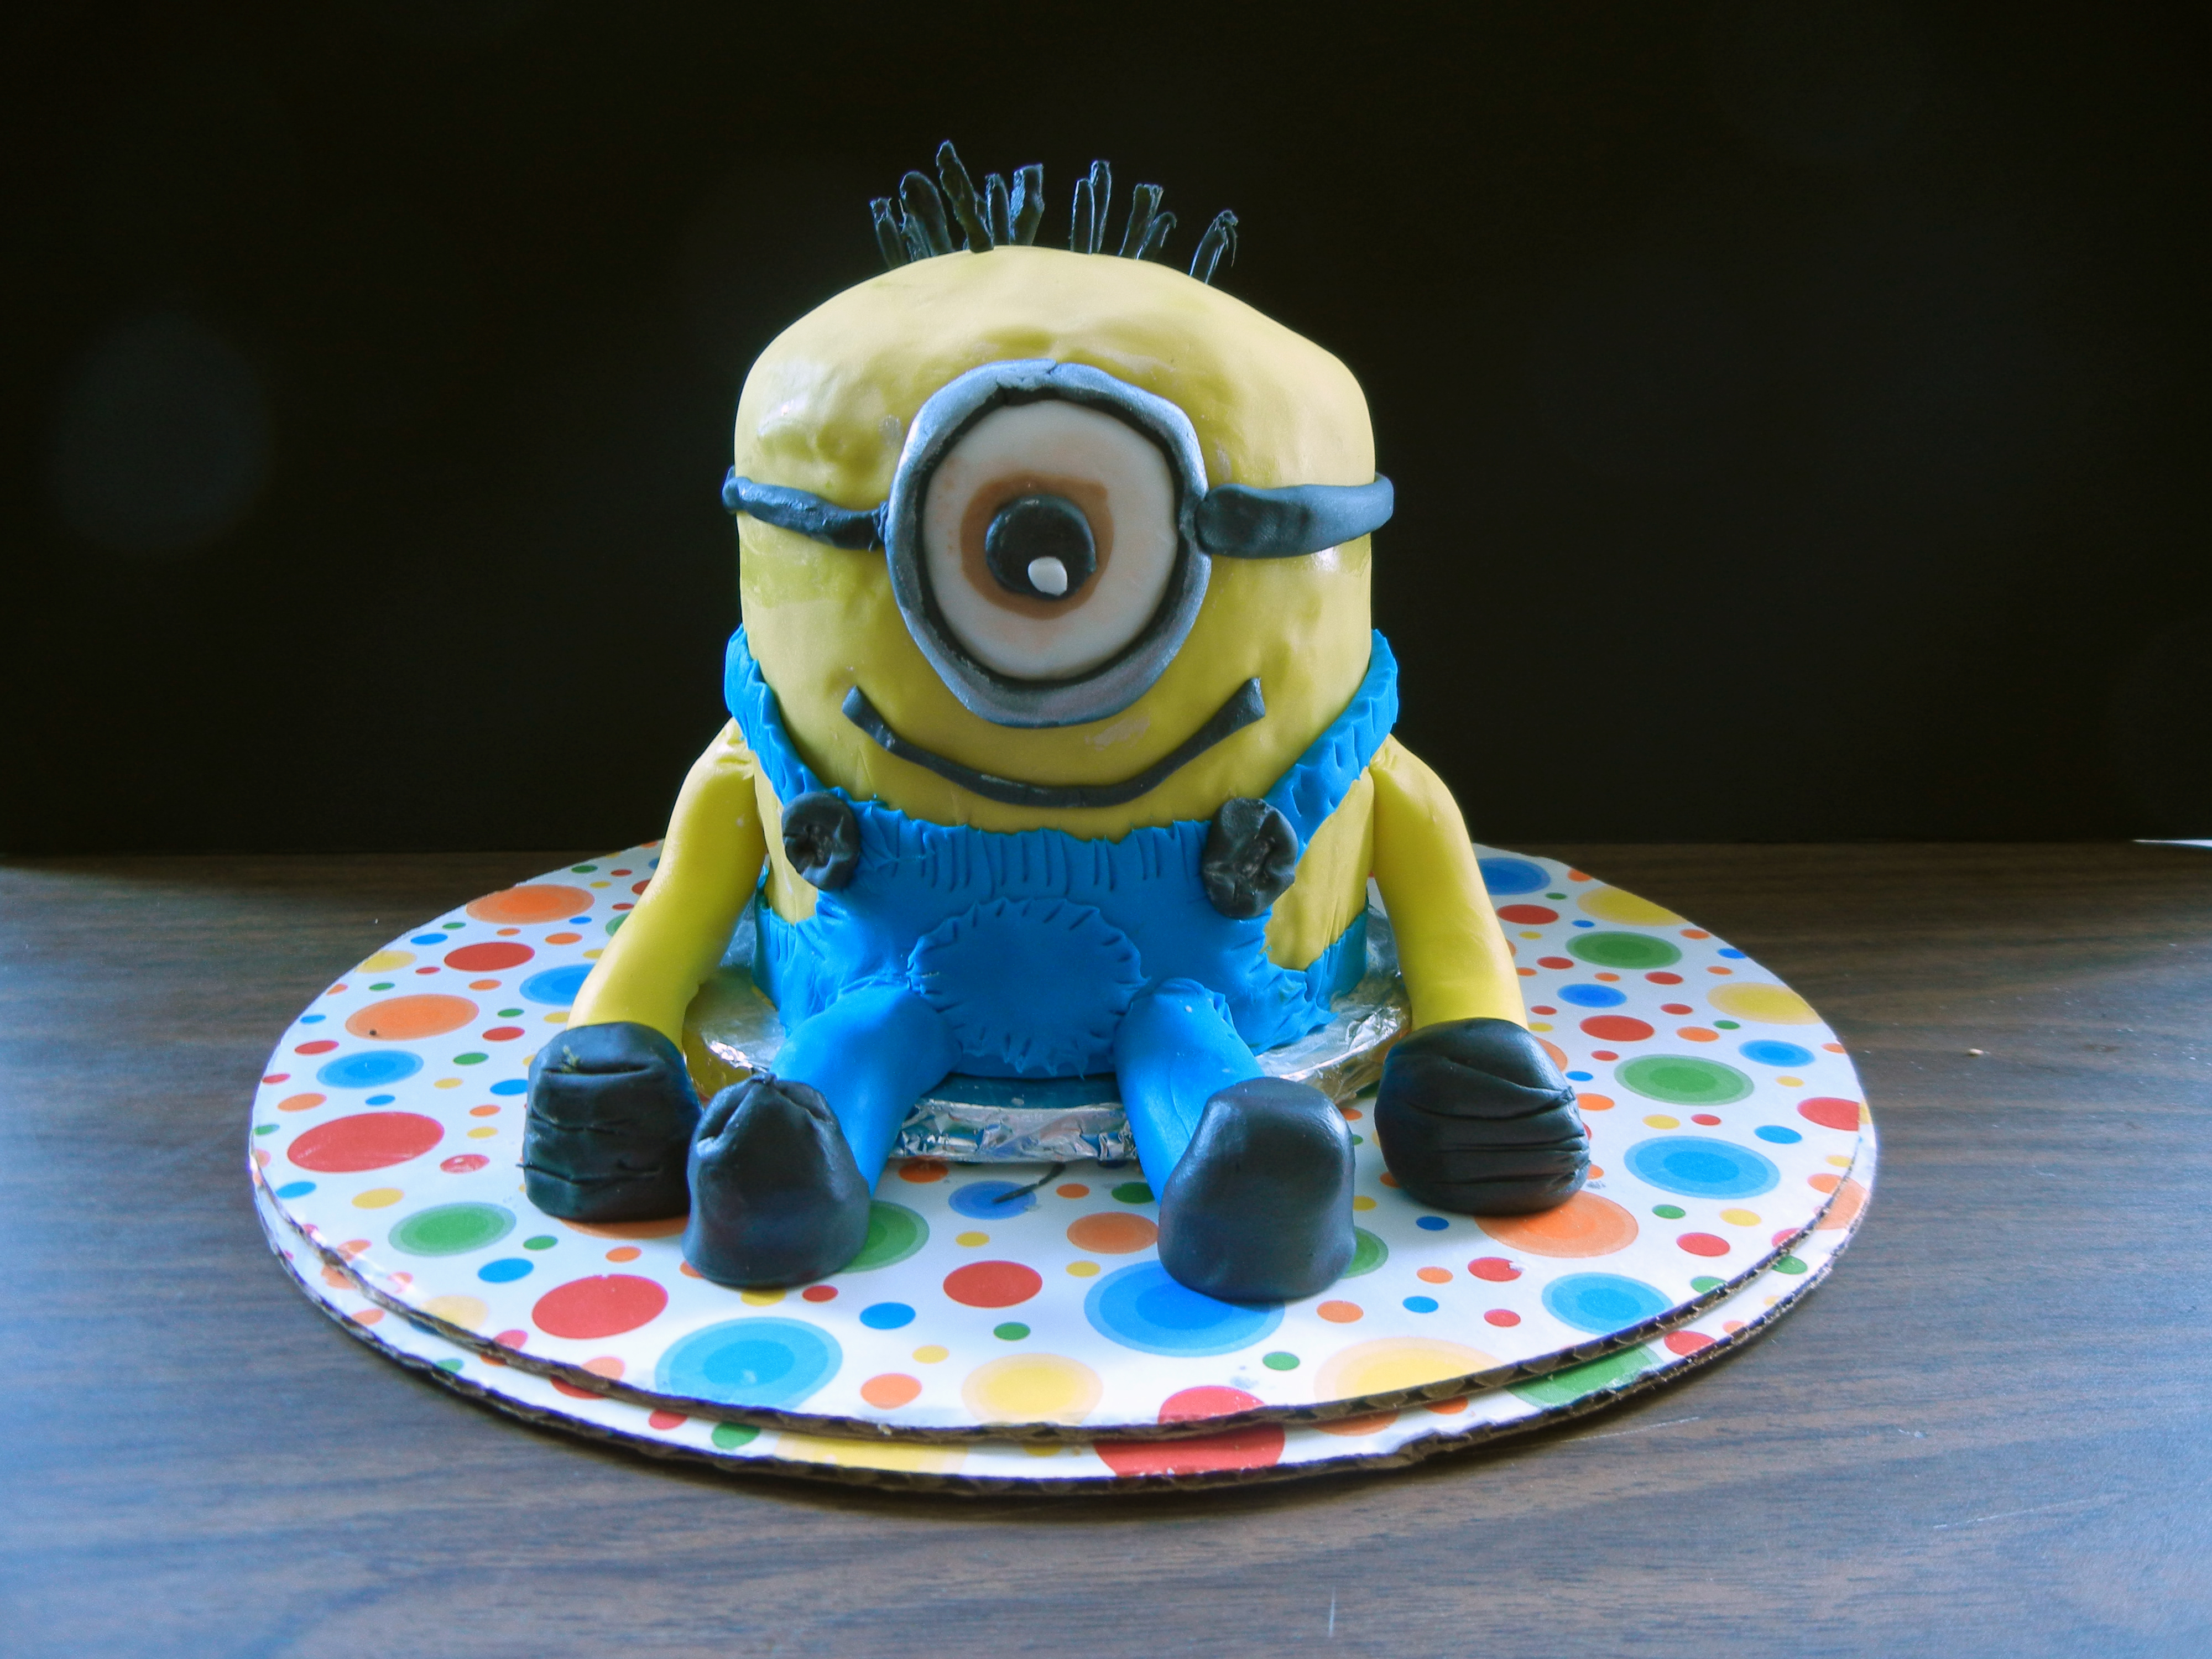 Despicable Me Minion Cake Bakers and Best